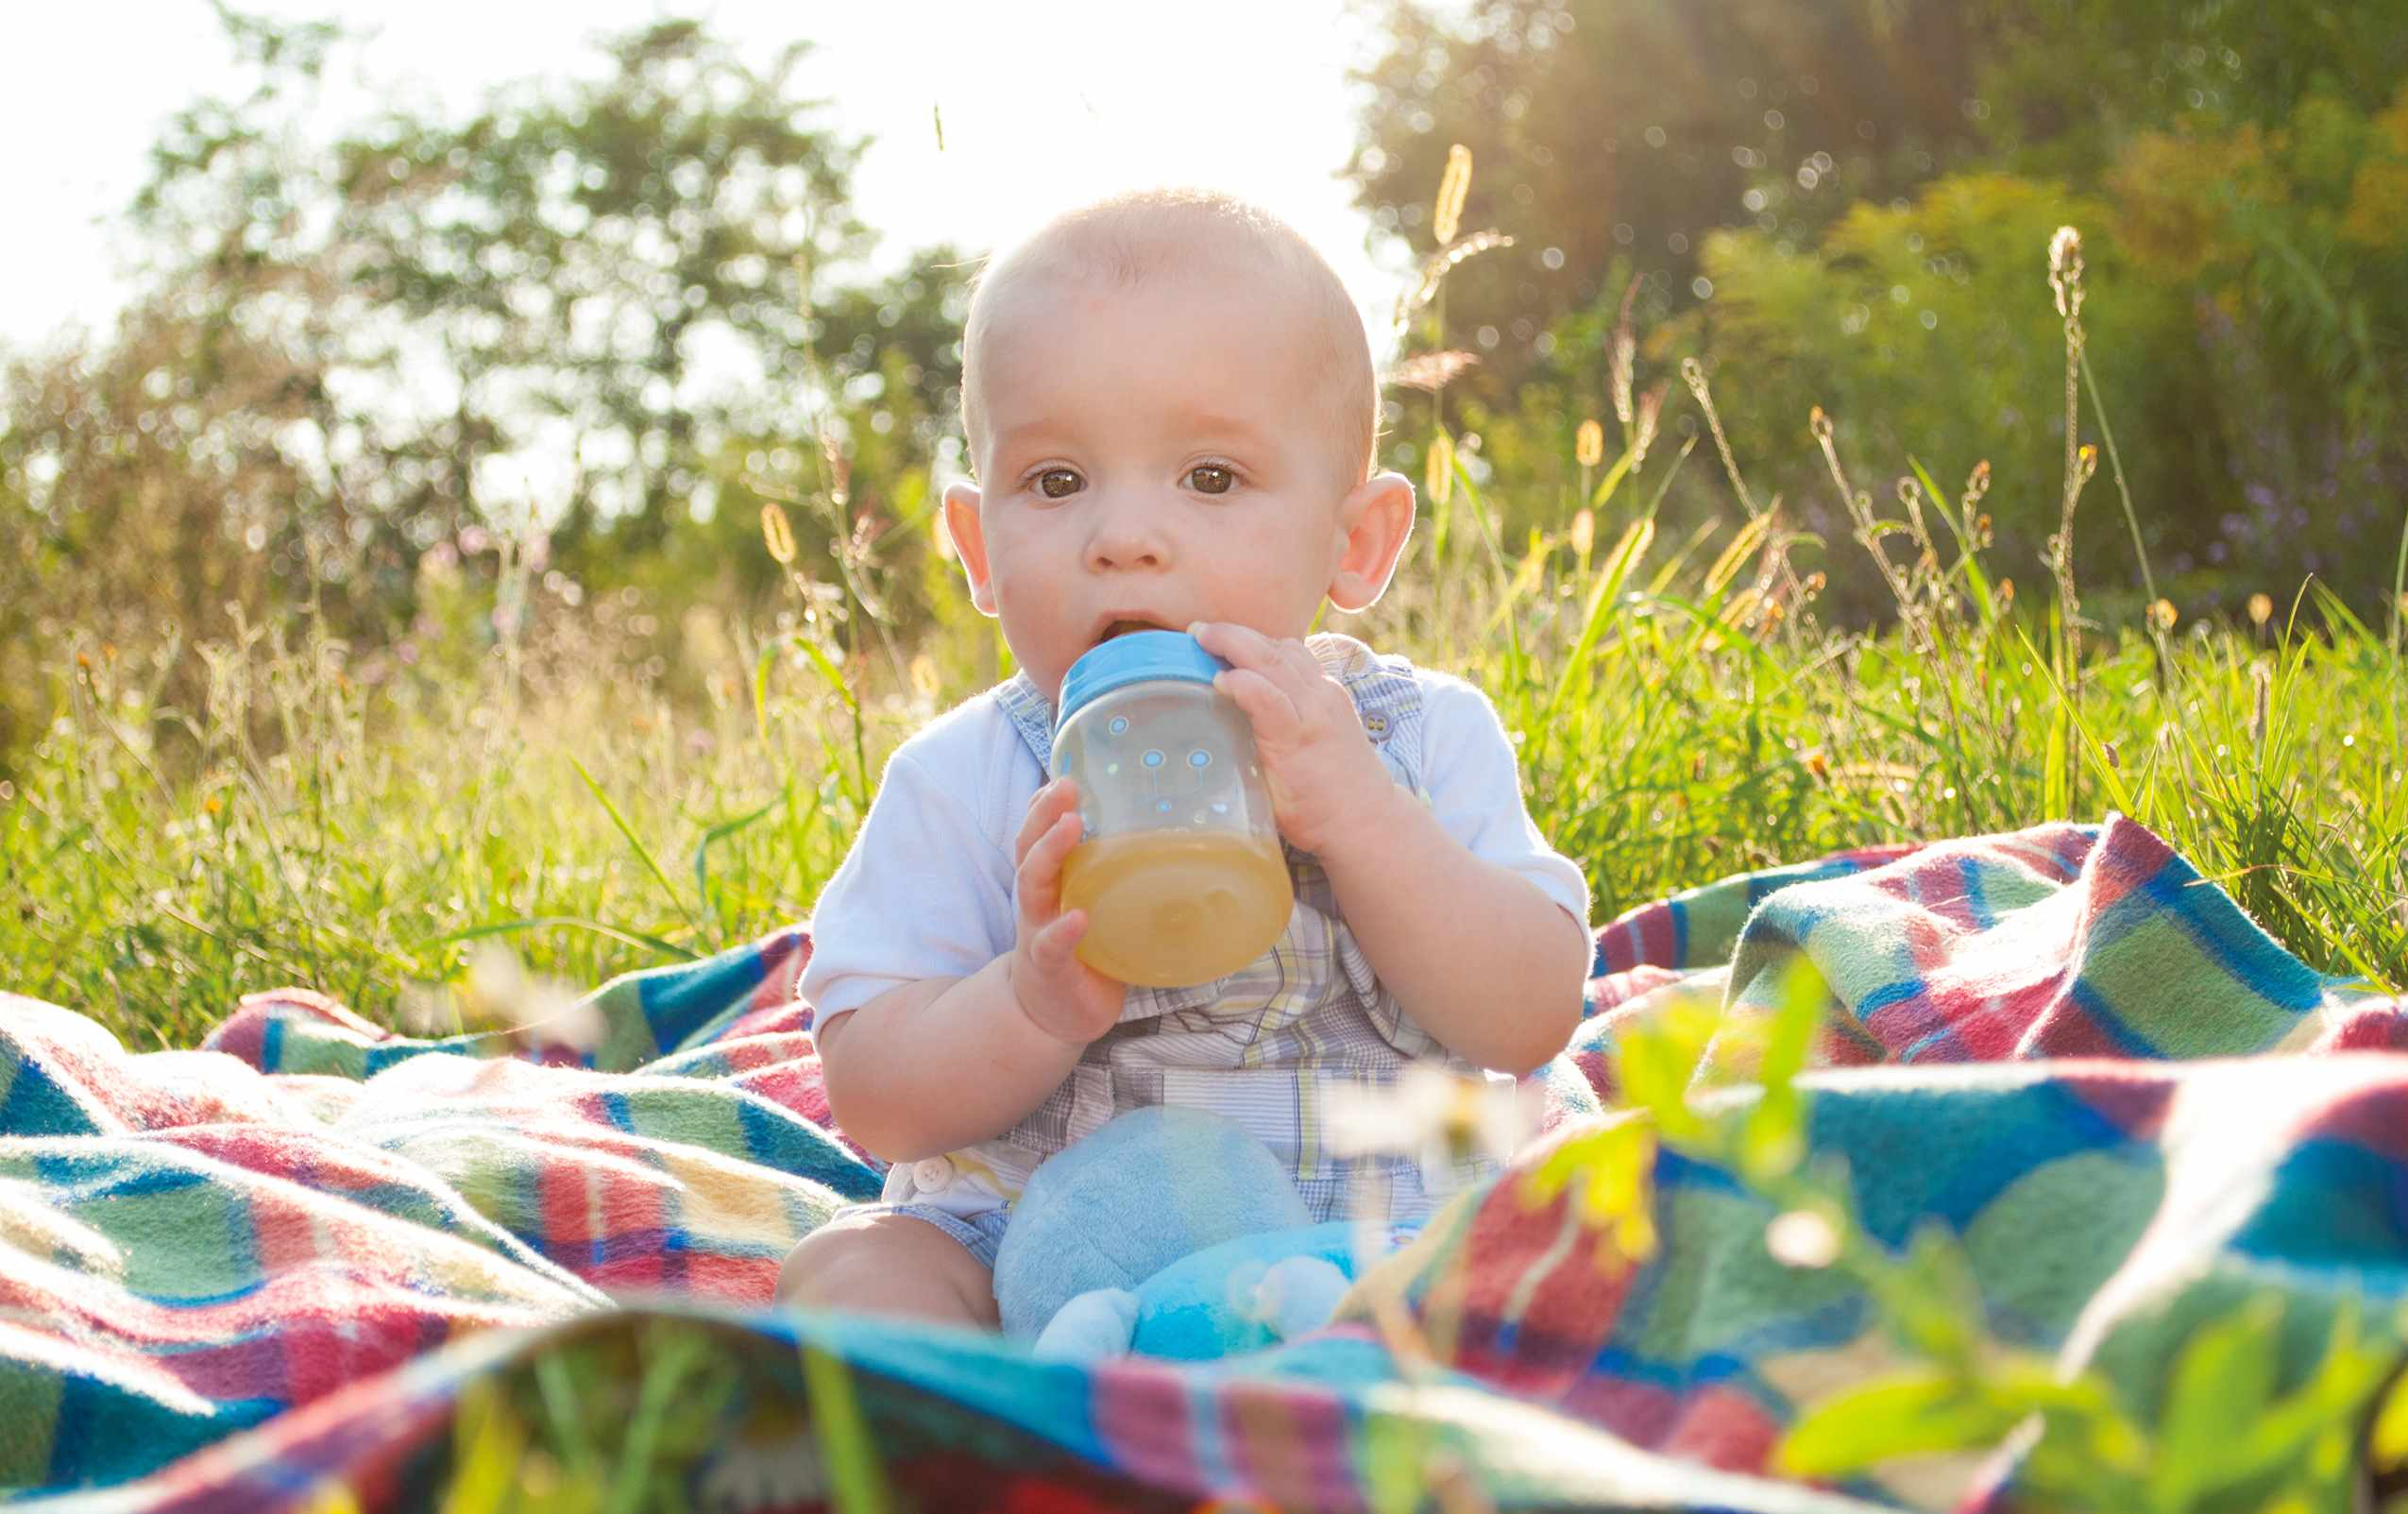 a baby sitting outsde on a blanket drinking from a juice bottle